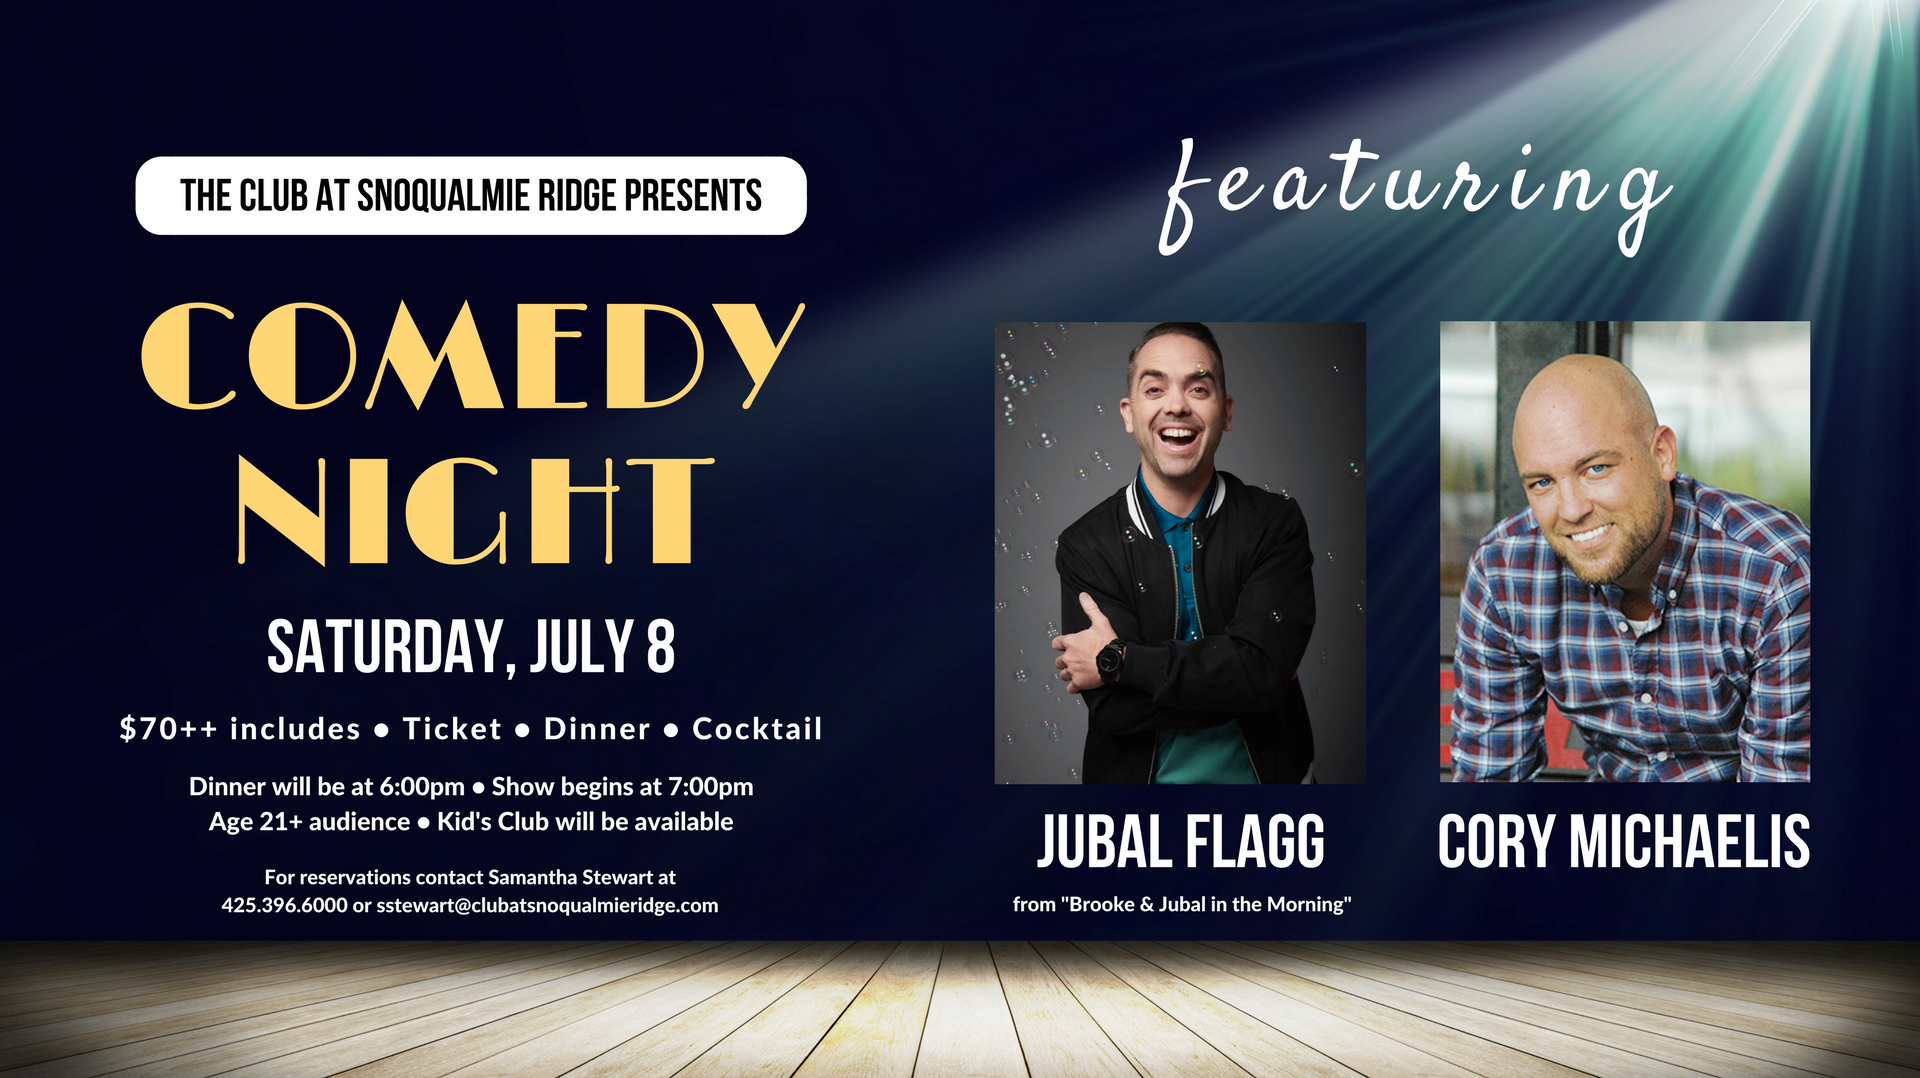 Comedy Night featuring Jubal Flagg and Cory Michaelis | The